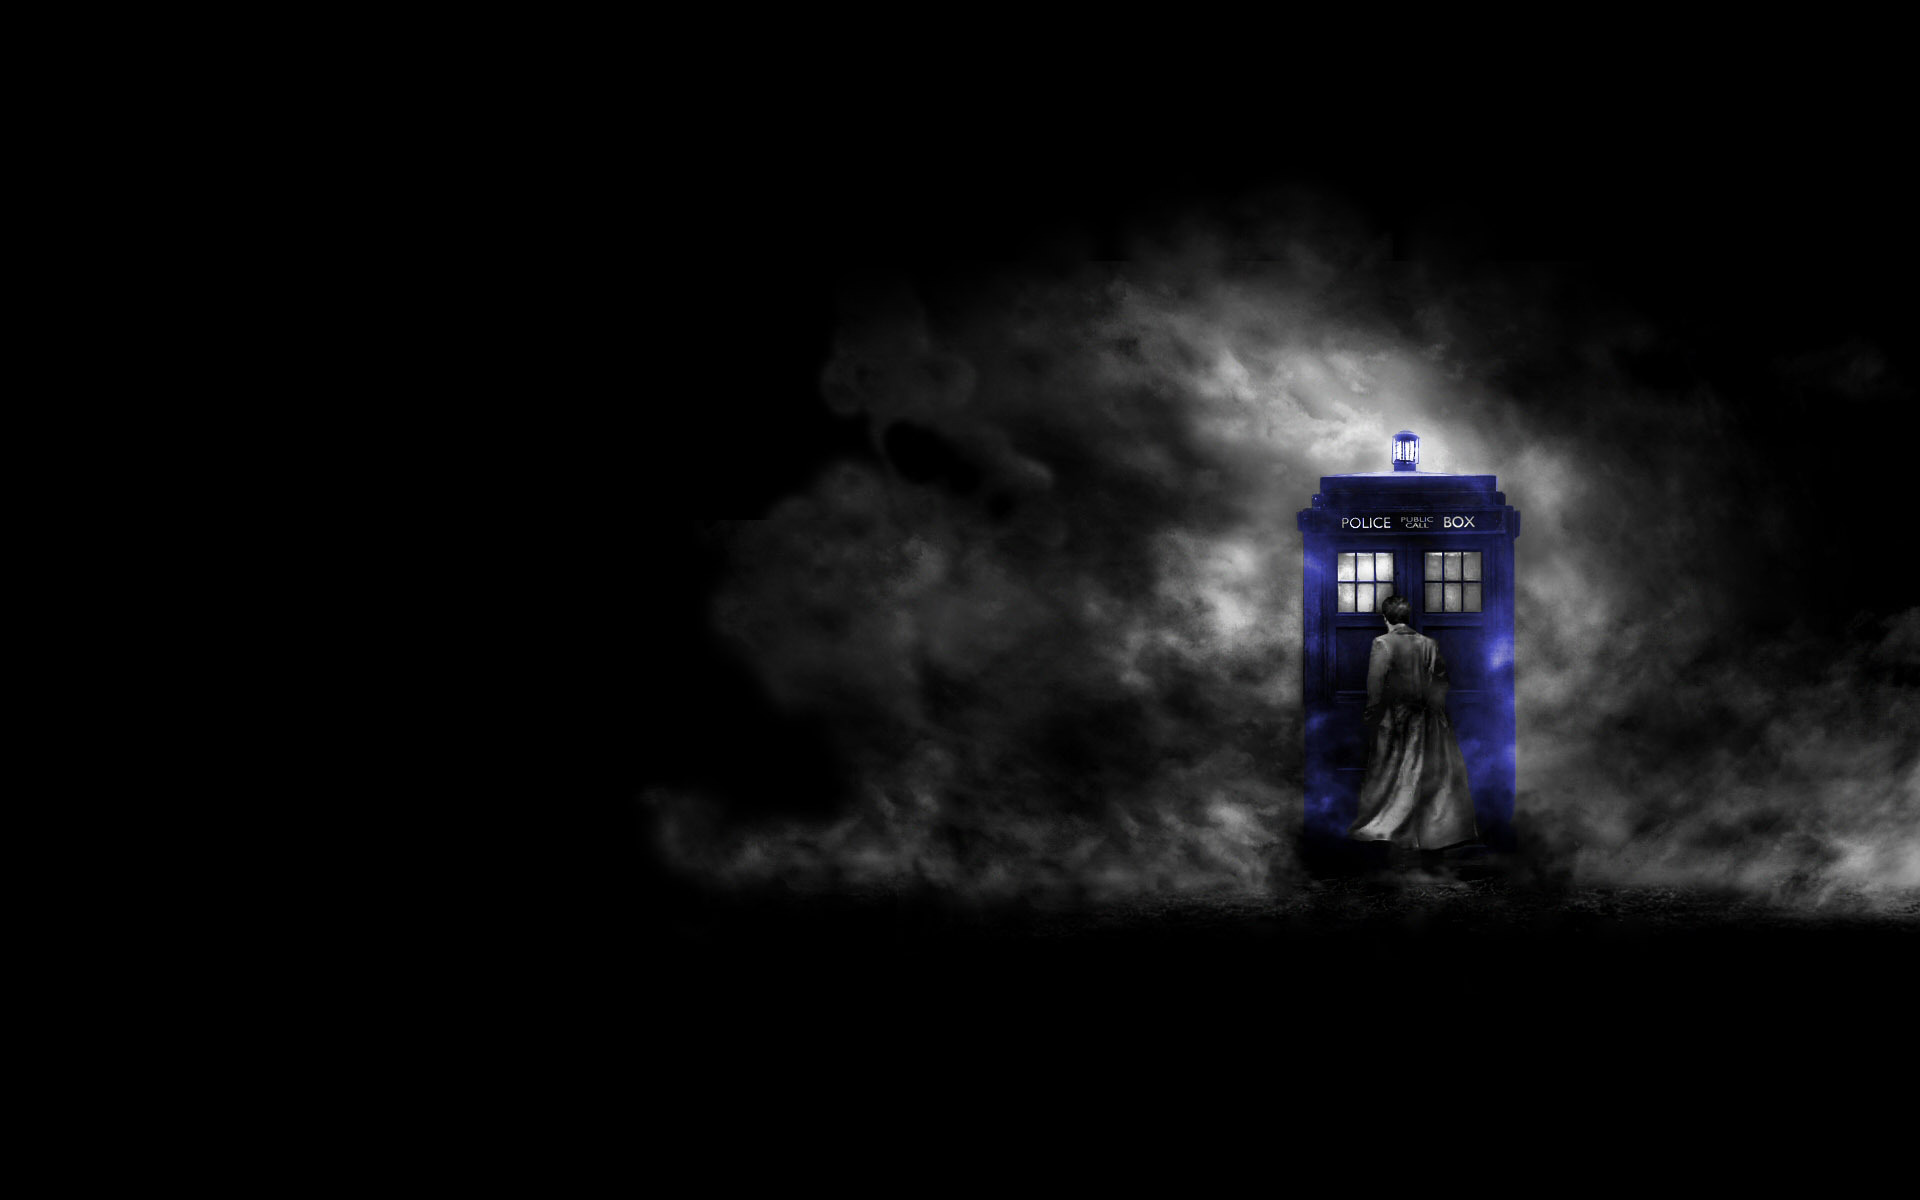 Doctor Who Desktop Wallpaper 1080p - WallpaperSafari